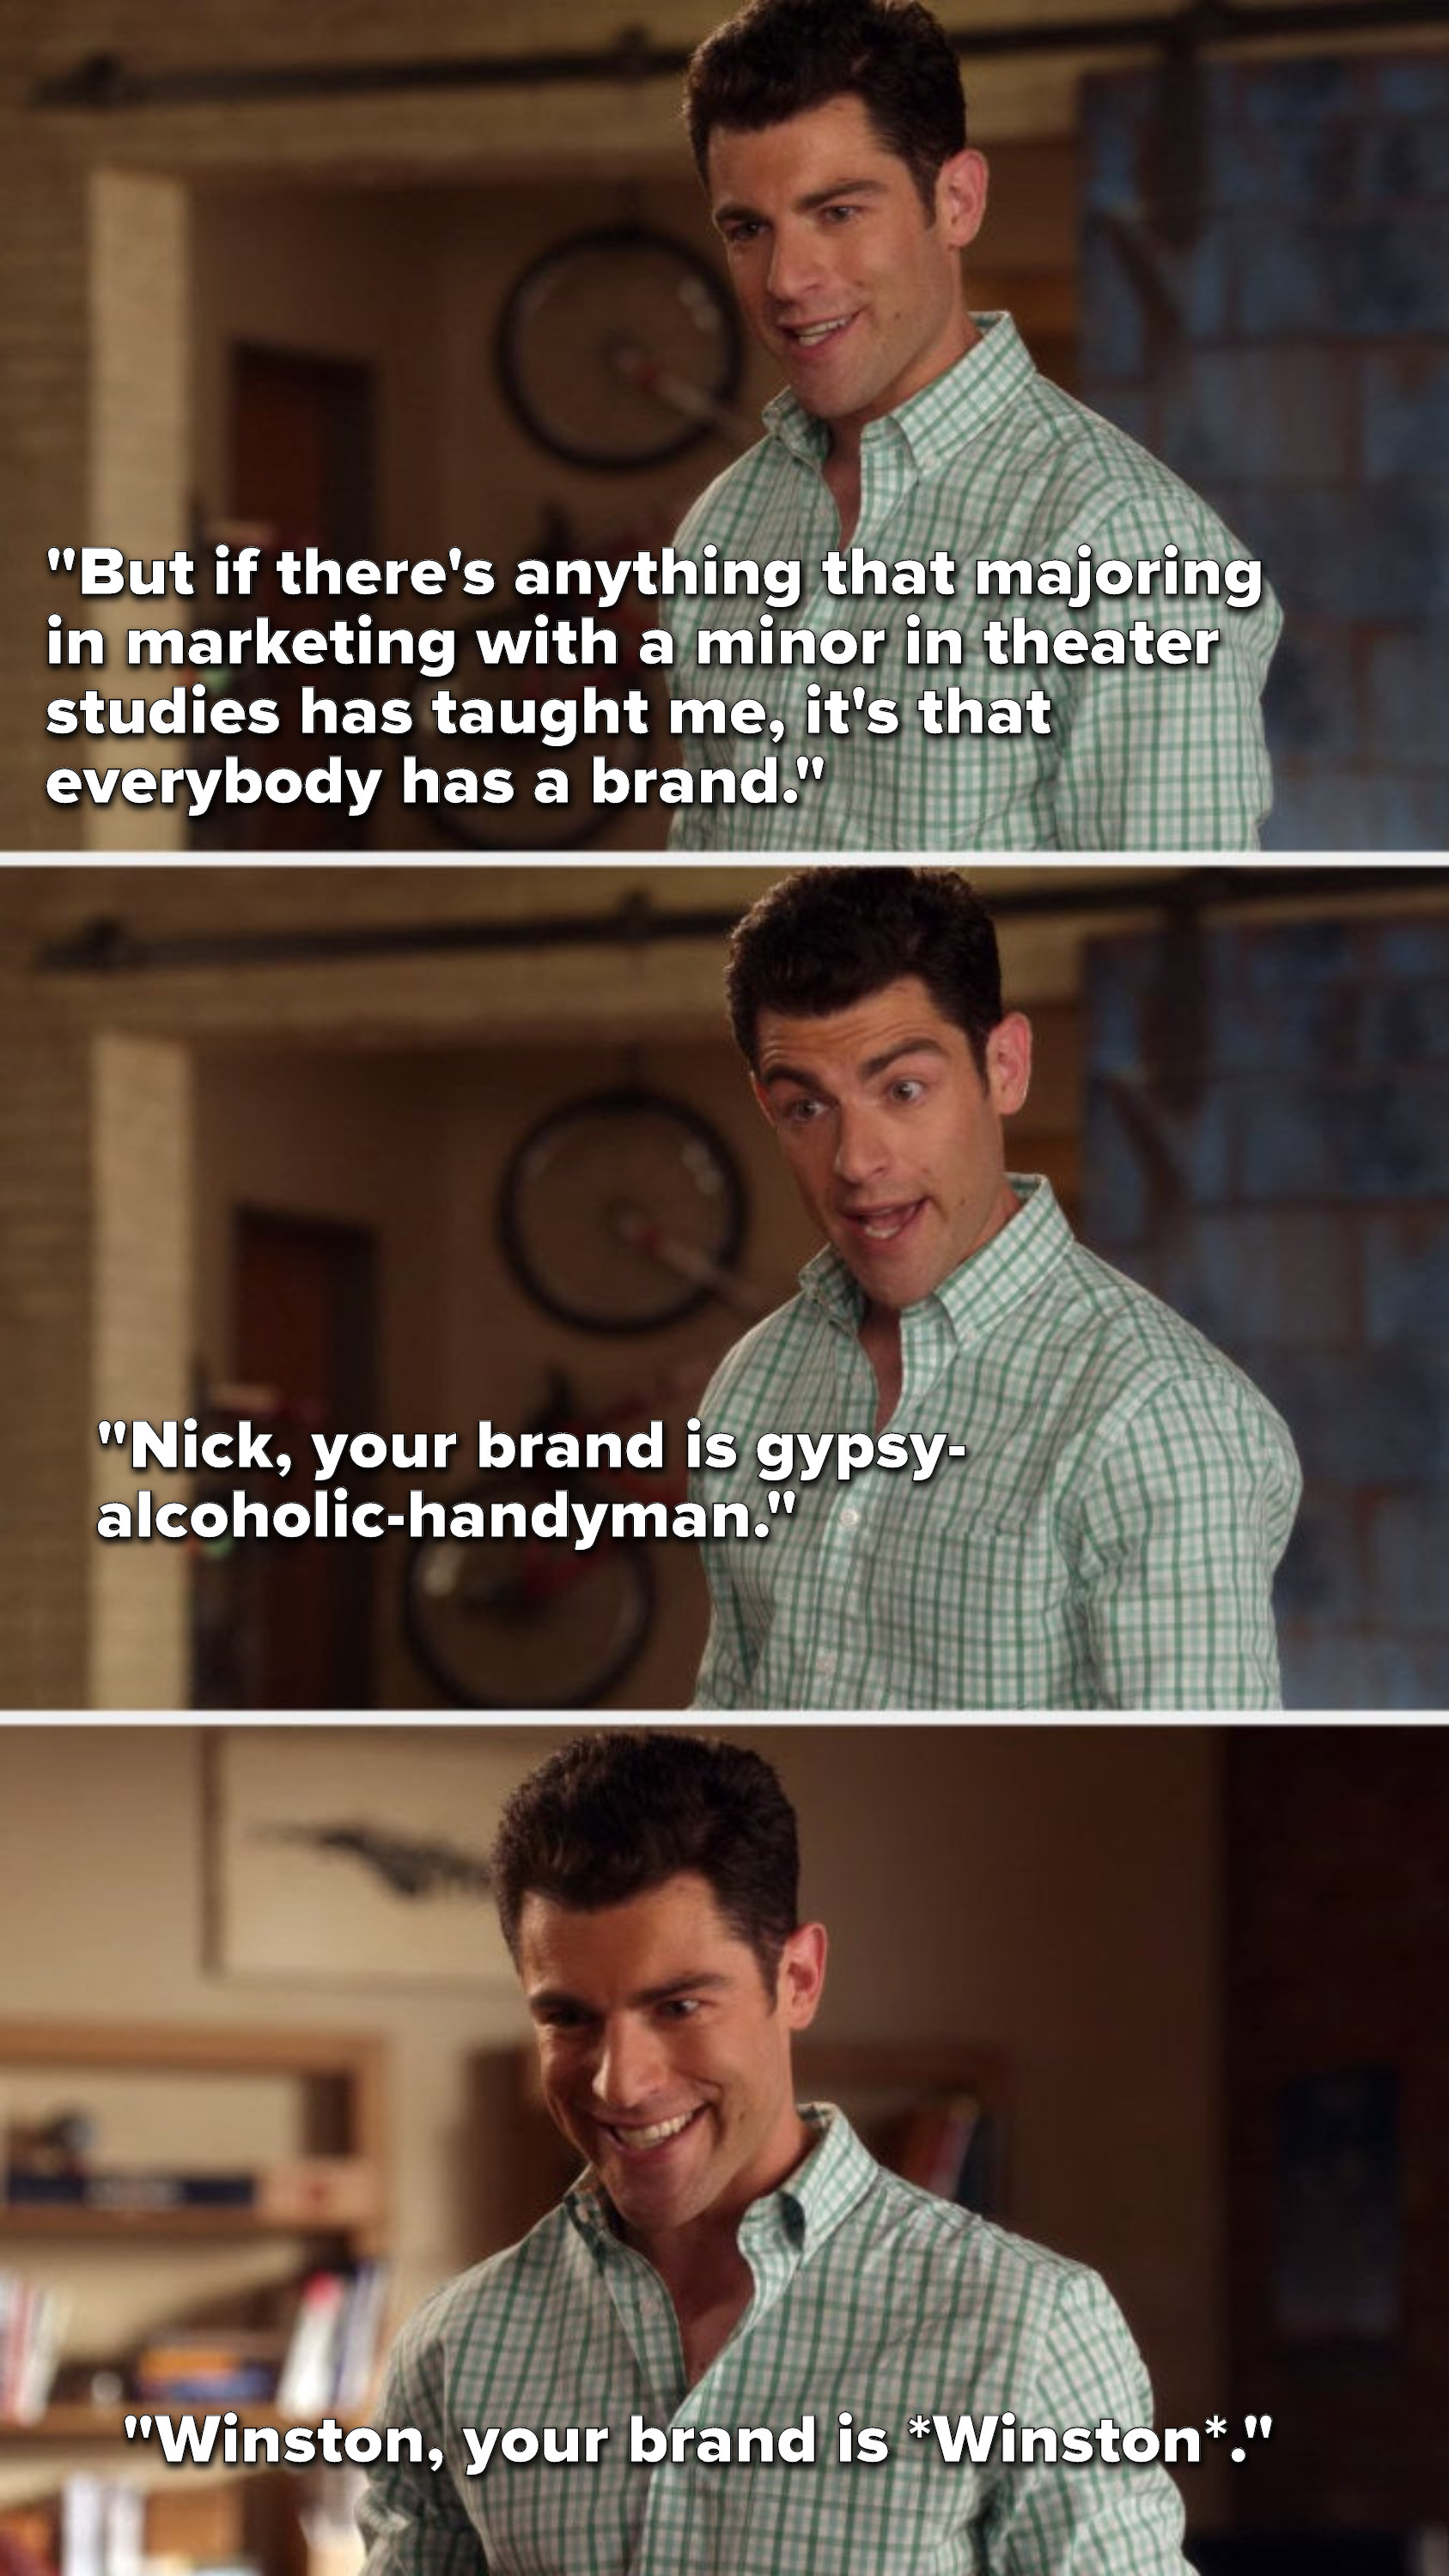 """Schmidt says, """"But if there's anything that majoring in marketing with a minor in theater studies has taught me, it's that everybody has a brand, Nick, your brand is gypsy-alcoholic-handyman, Winston, your brand is *Winston*"""""""